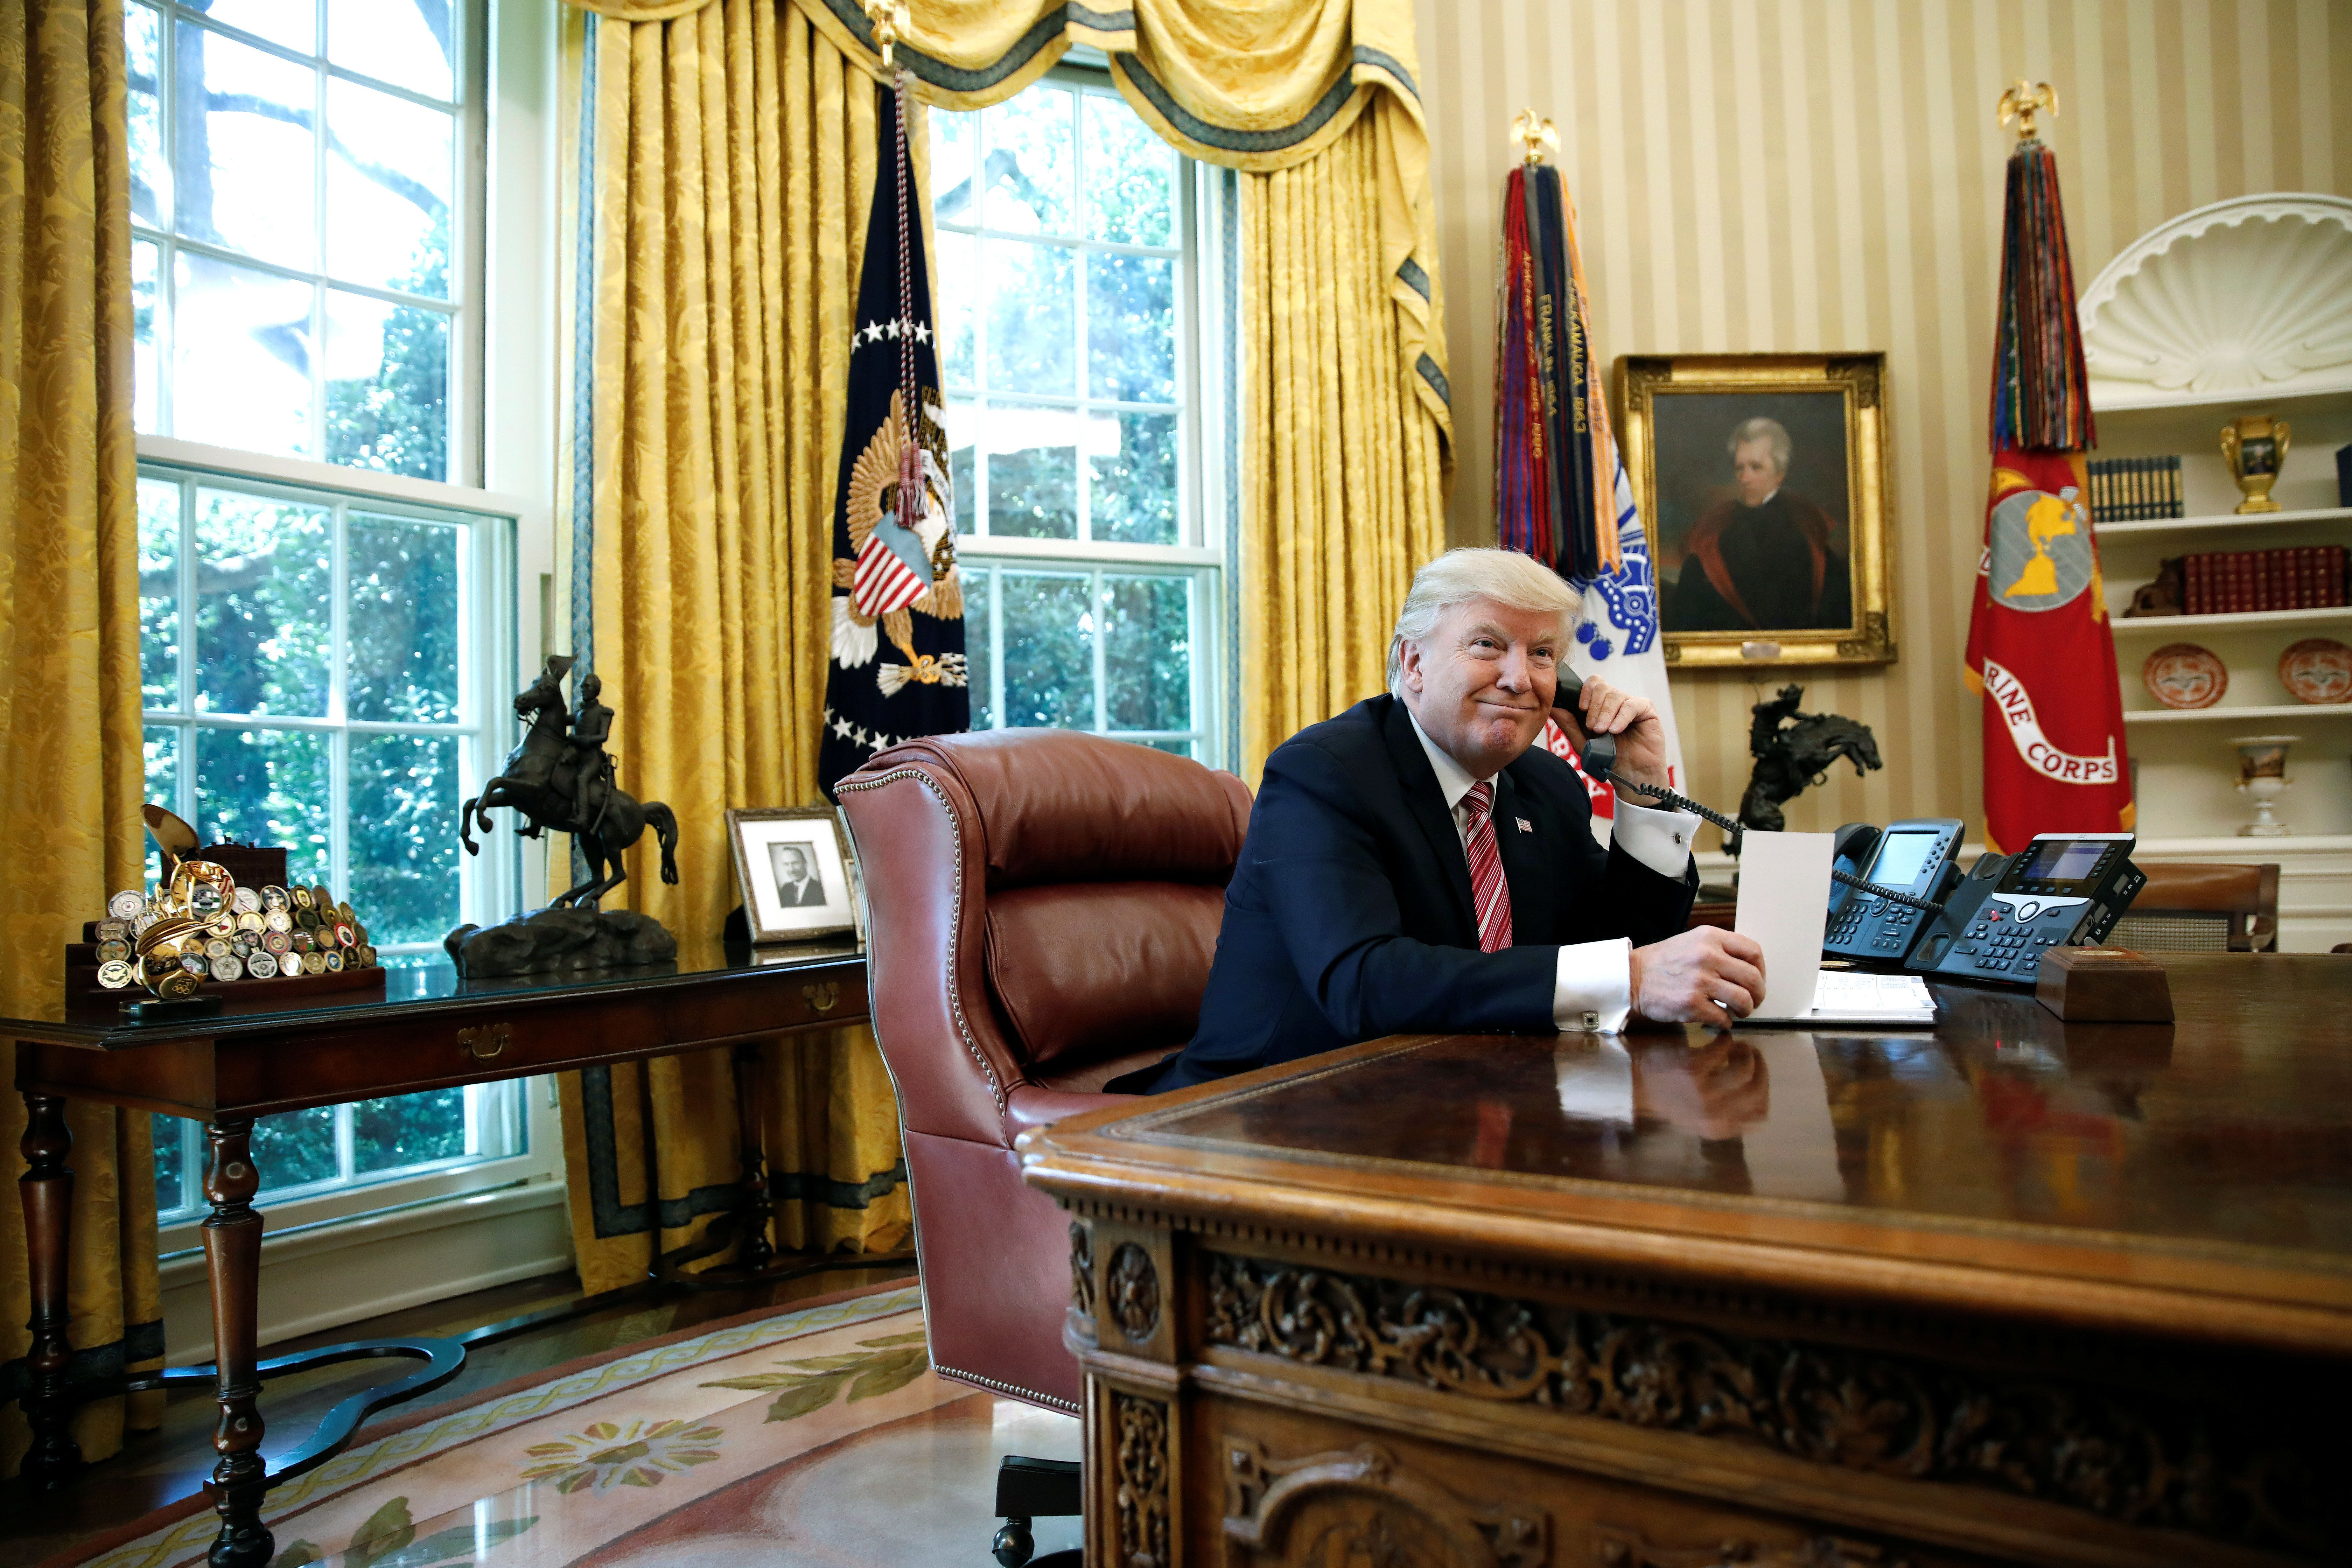 U.S. President Donald Trump waits on the line as he calls Prime Minister of Ireland Leo Varadkar to congratulate him for his victory, at the Oval Office of the White House in Washington, U.S., June 27, 2017. REUTERS/Carlos Barria